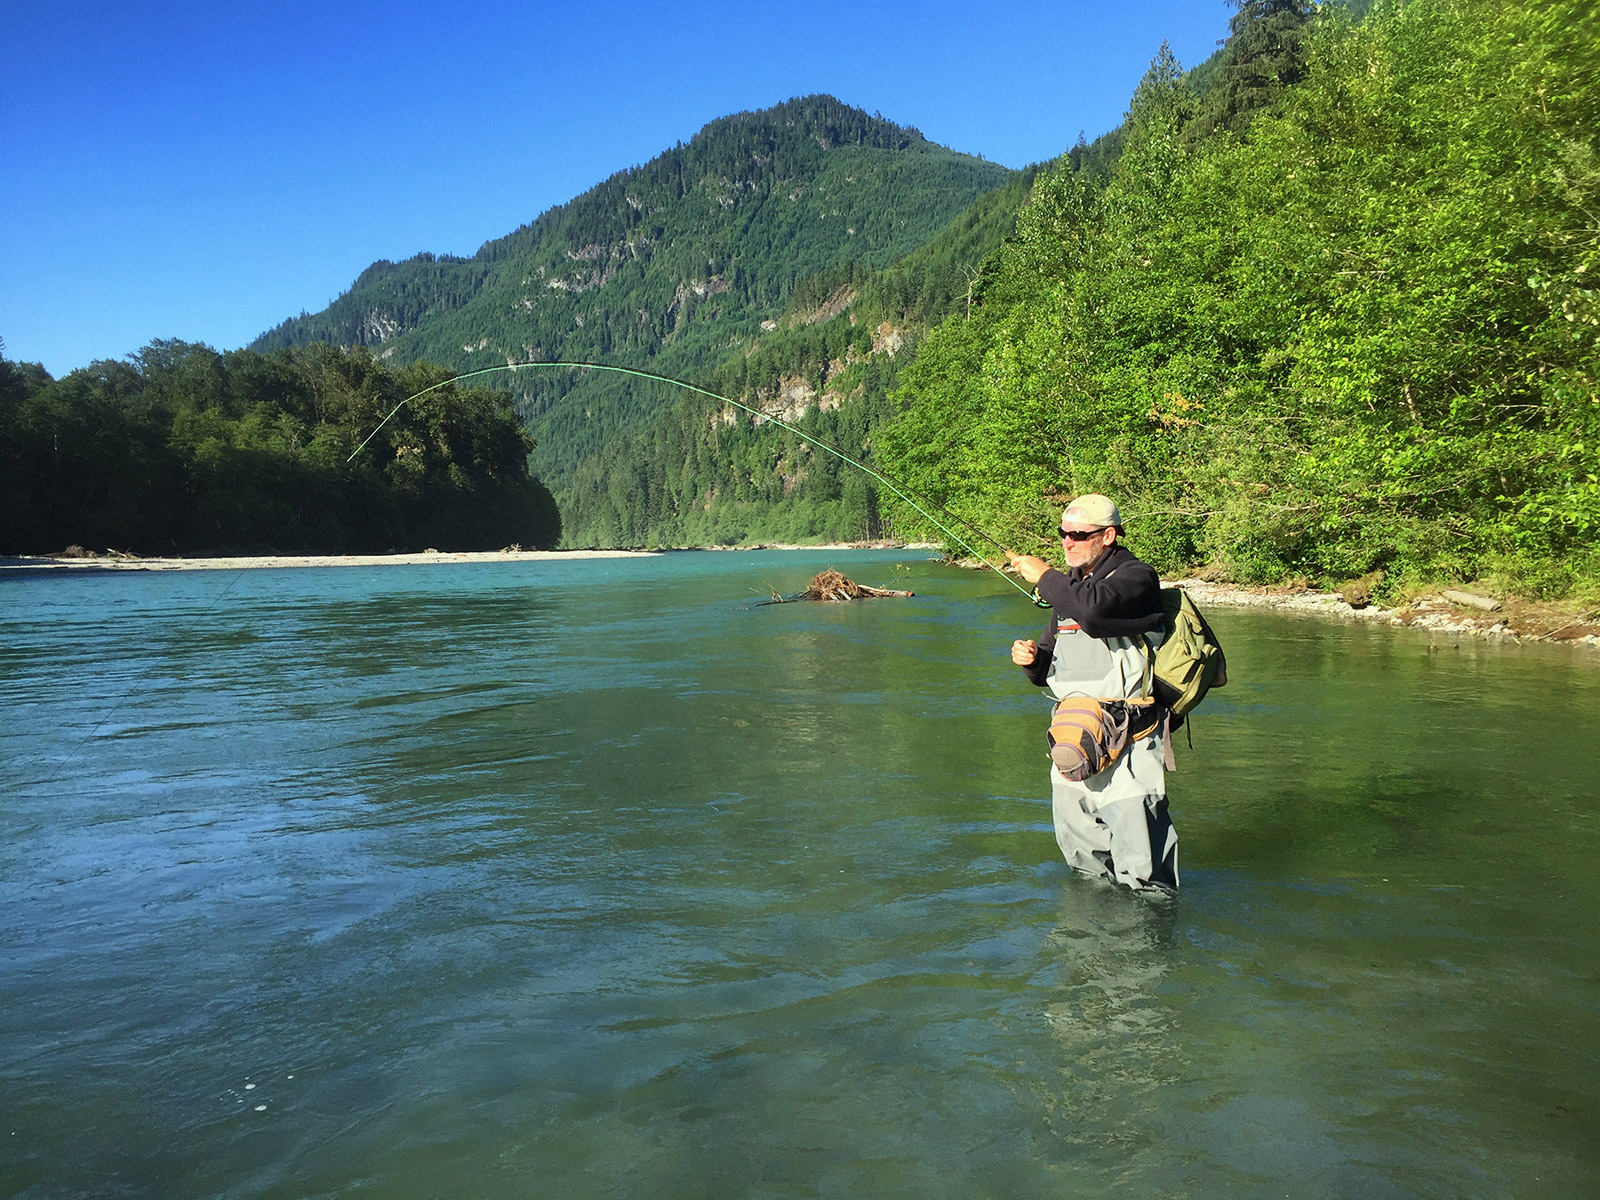 fly fishing, pitt river, bull trout, trout, fly fishing guide, vancouver fly fishing, bc fly fishing, fly fishing tour, fly fishing trips, vancouver fly fishing tours, pitt river fly fishing guide, trout fishing vancouver